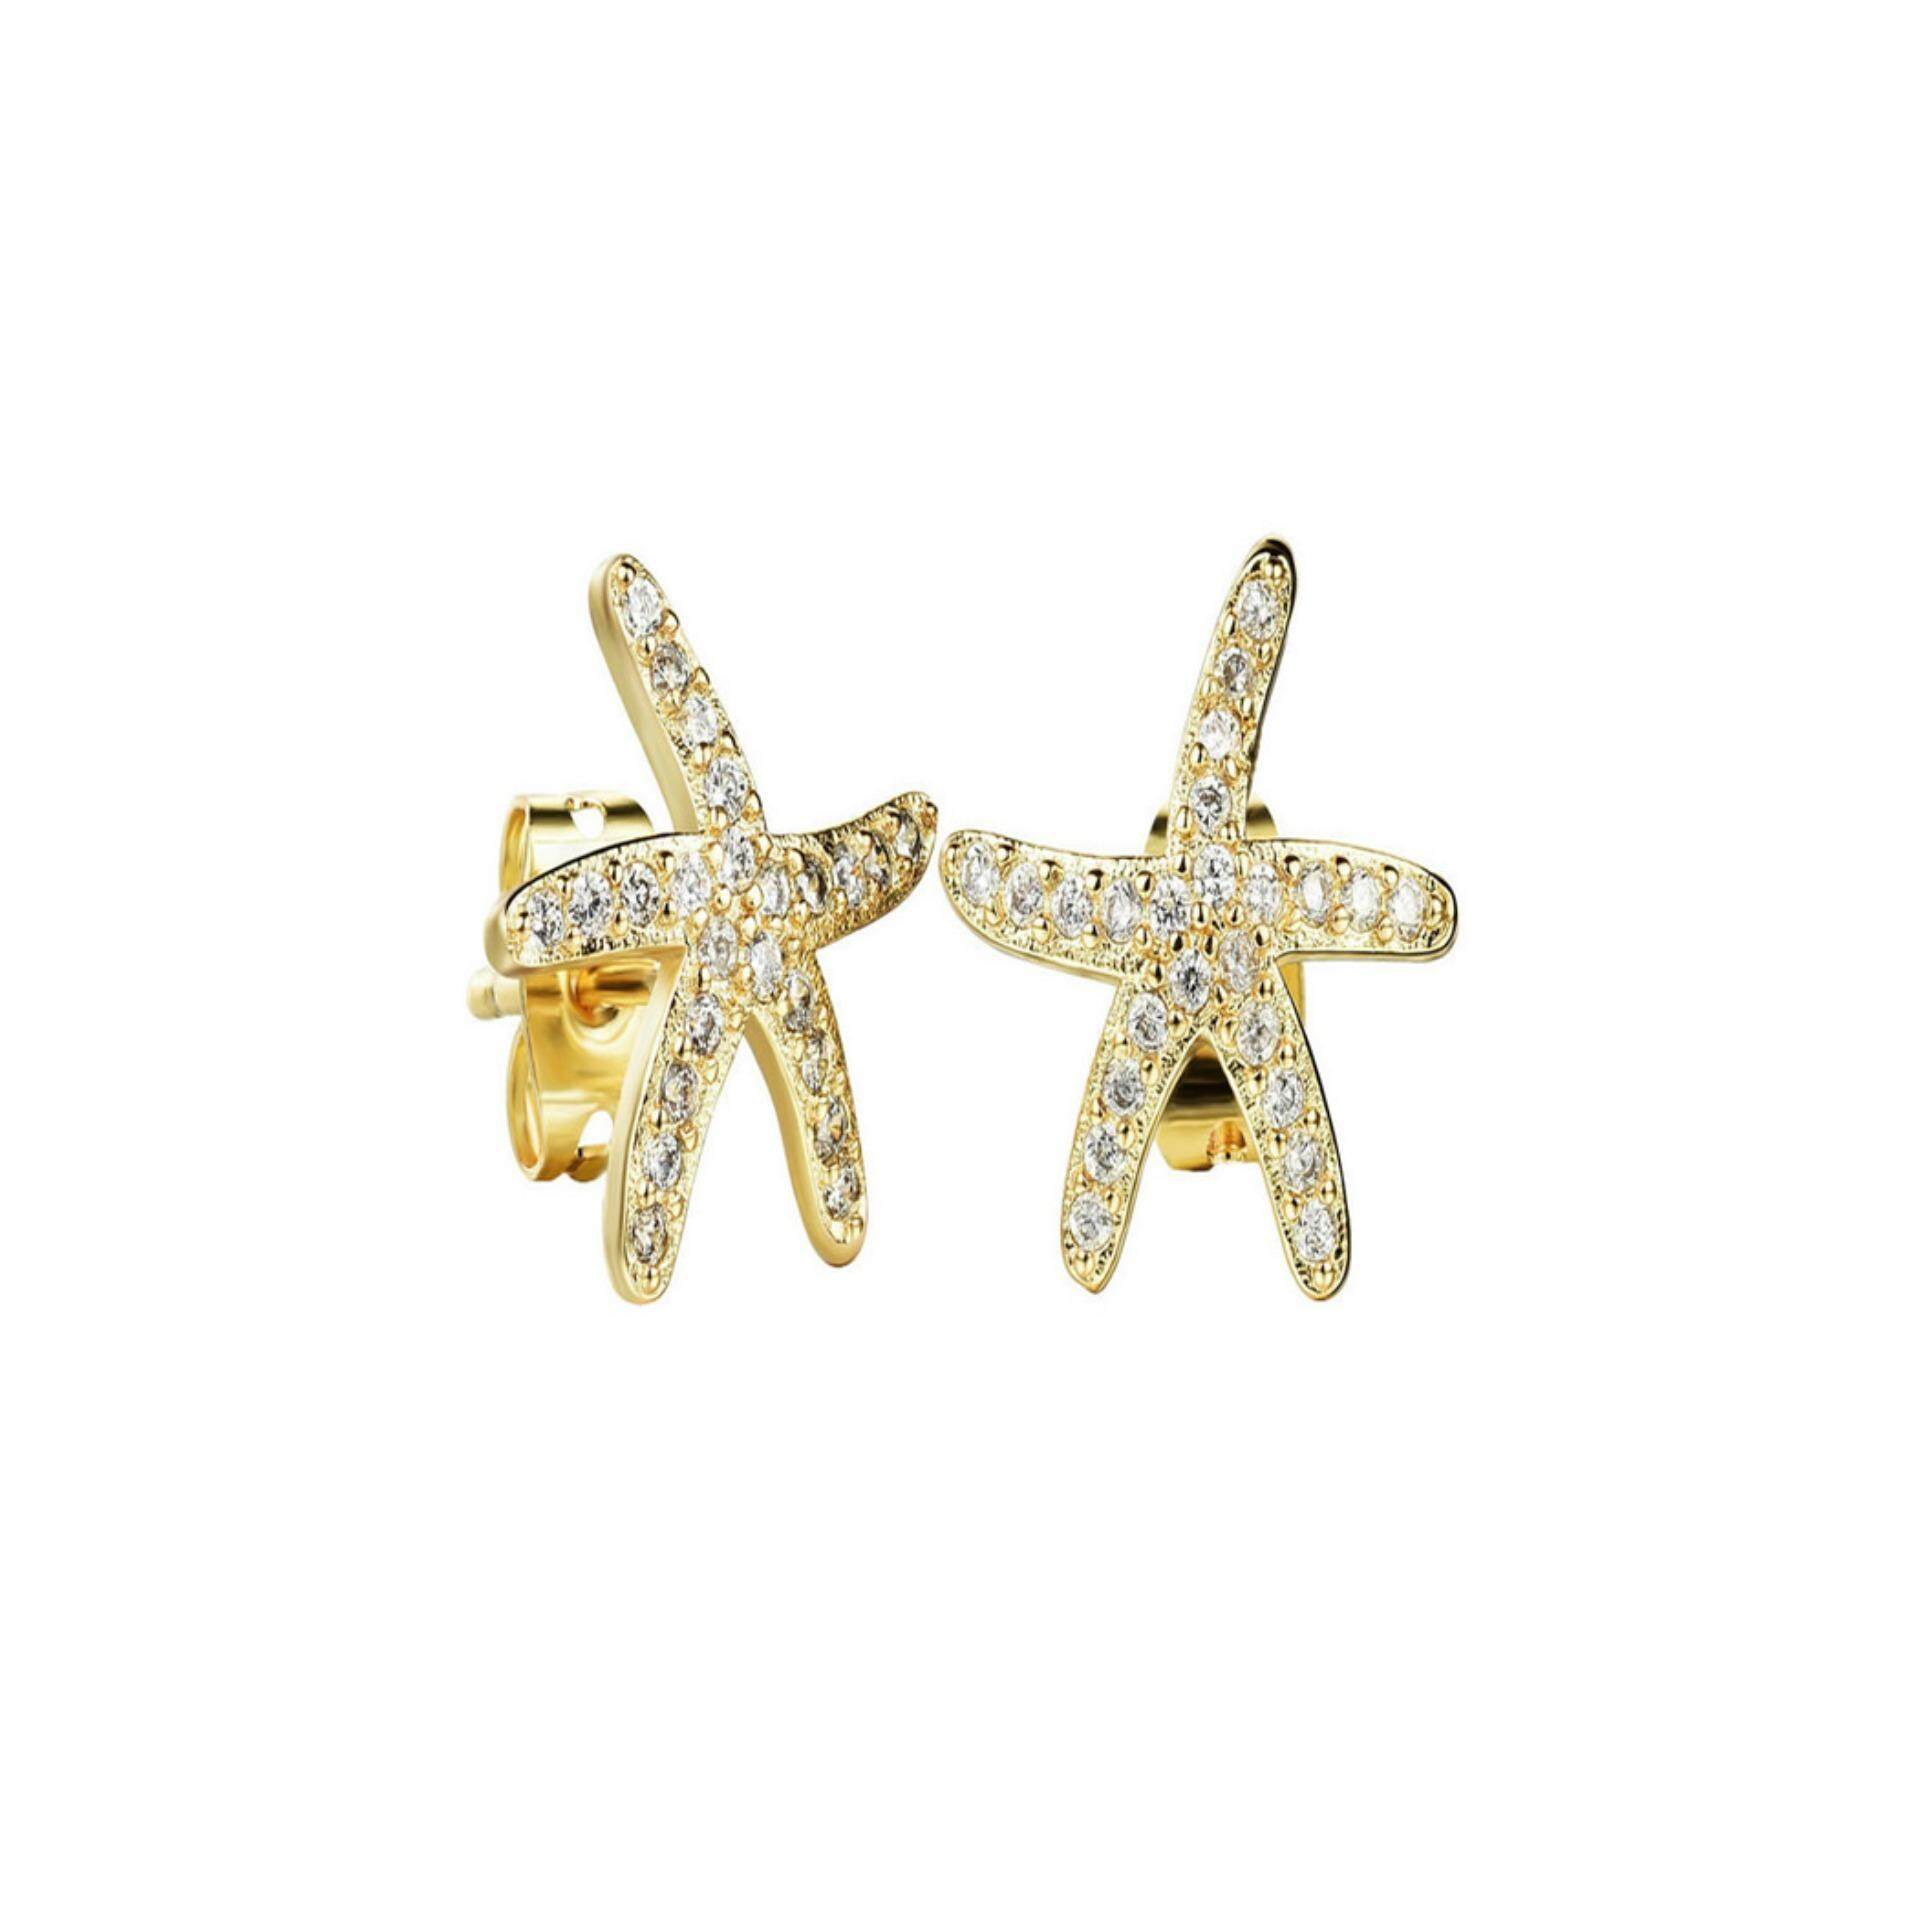 Stud Earrings For Sale Pin Online Brands Prices The Special Gift Cocoa Jewelry Anting Elegant Love Yoursfs Starfishroses Austria Crystal Cute Women Girls Wedding Rose Gold Color Korean